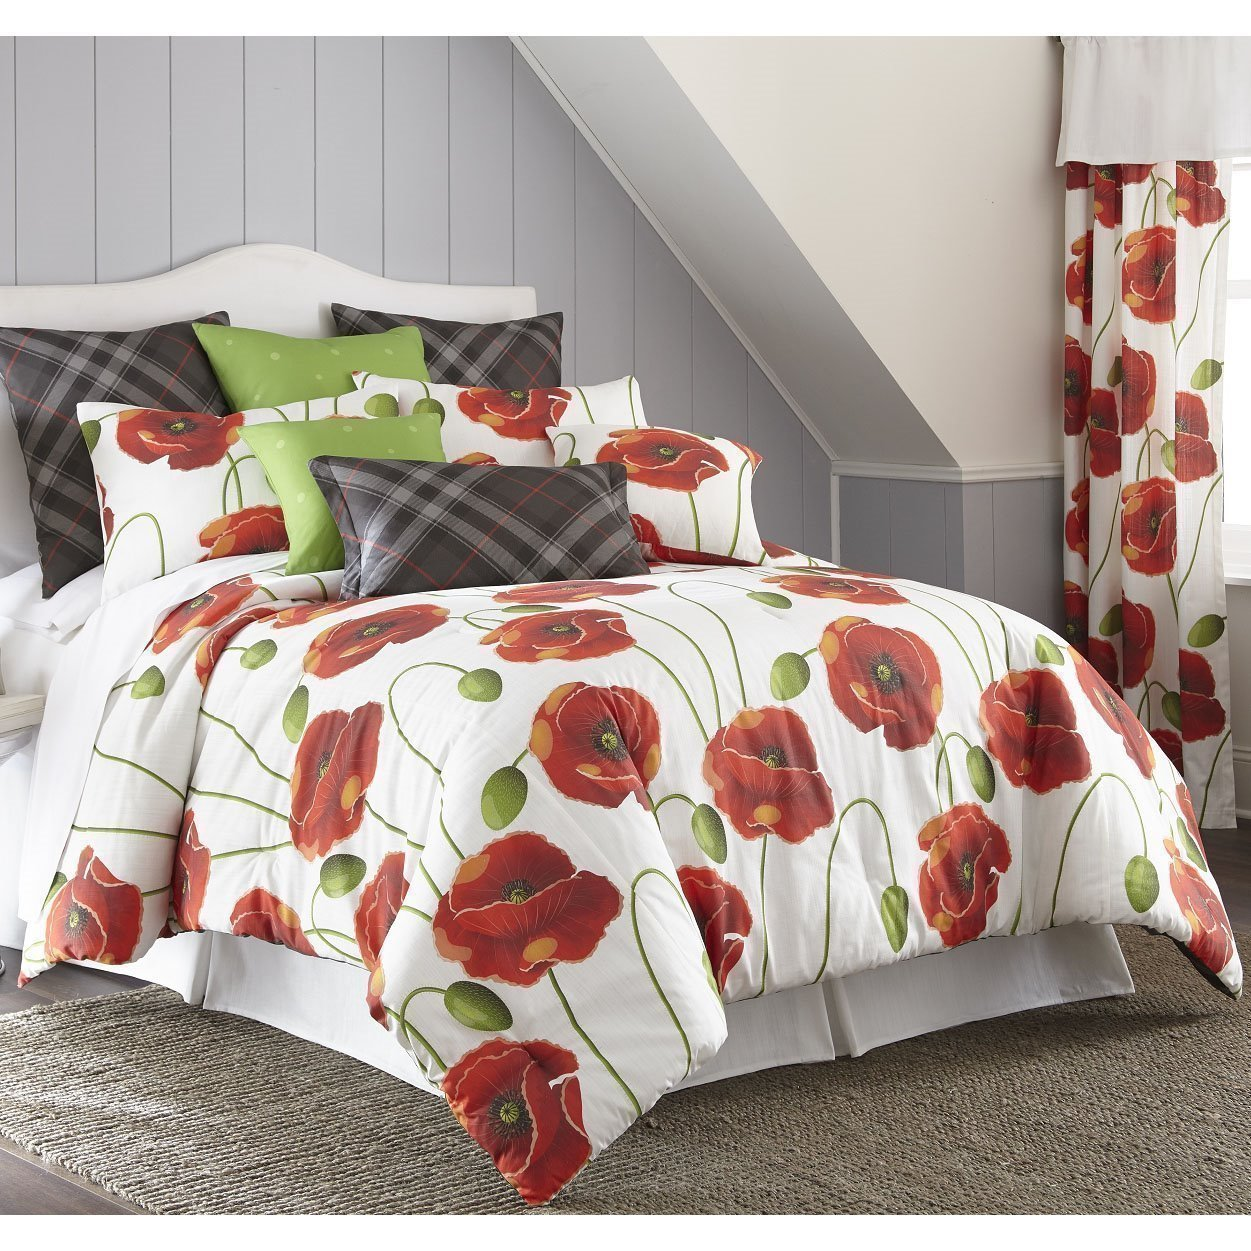 Poppy Plaid Duvet Cover Set Queen Size